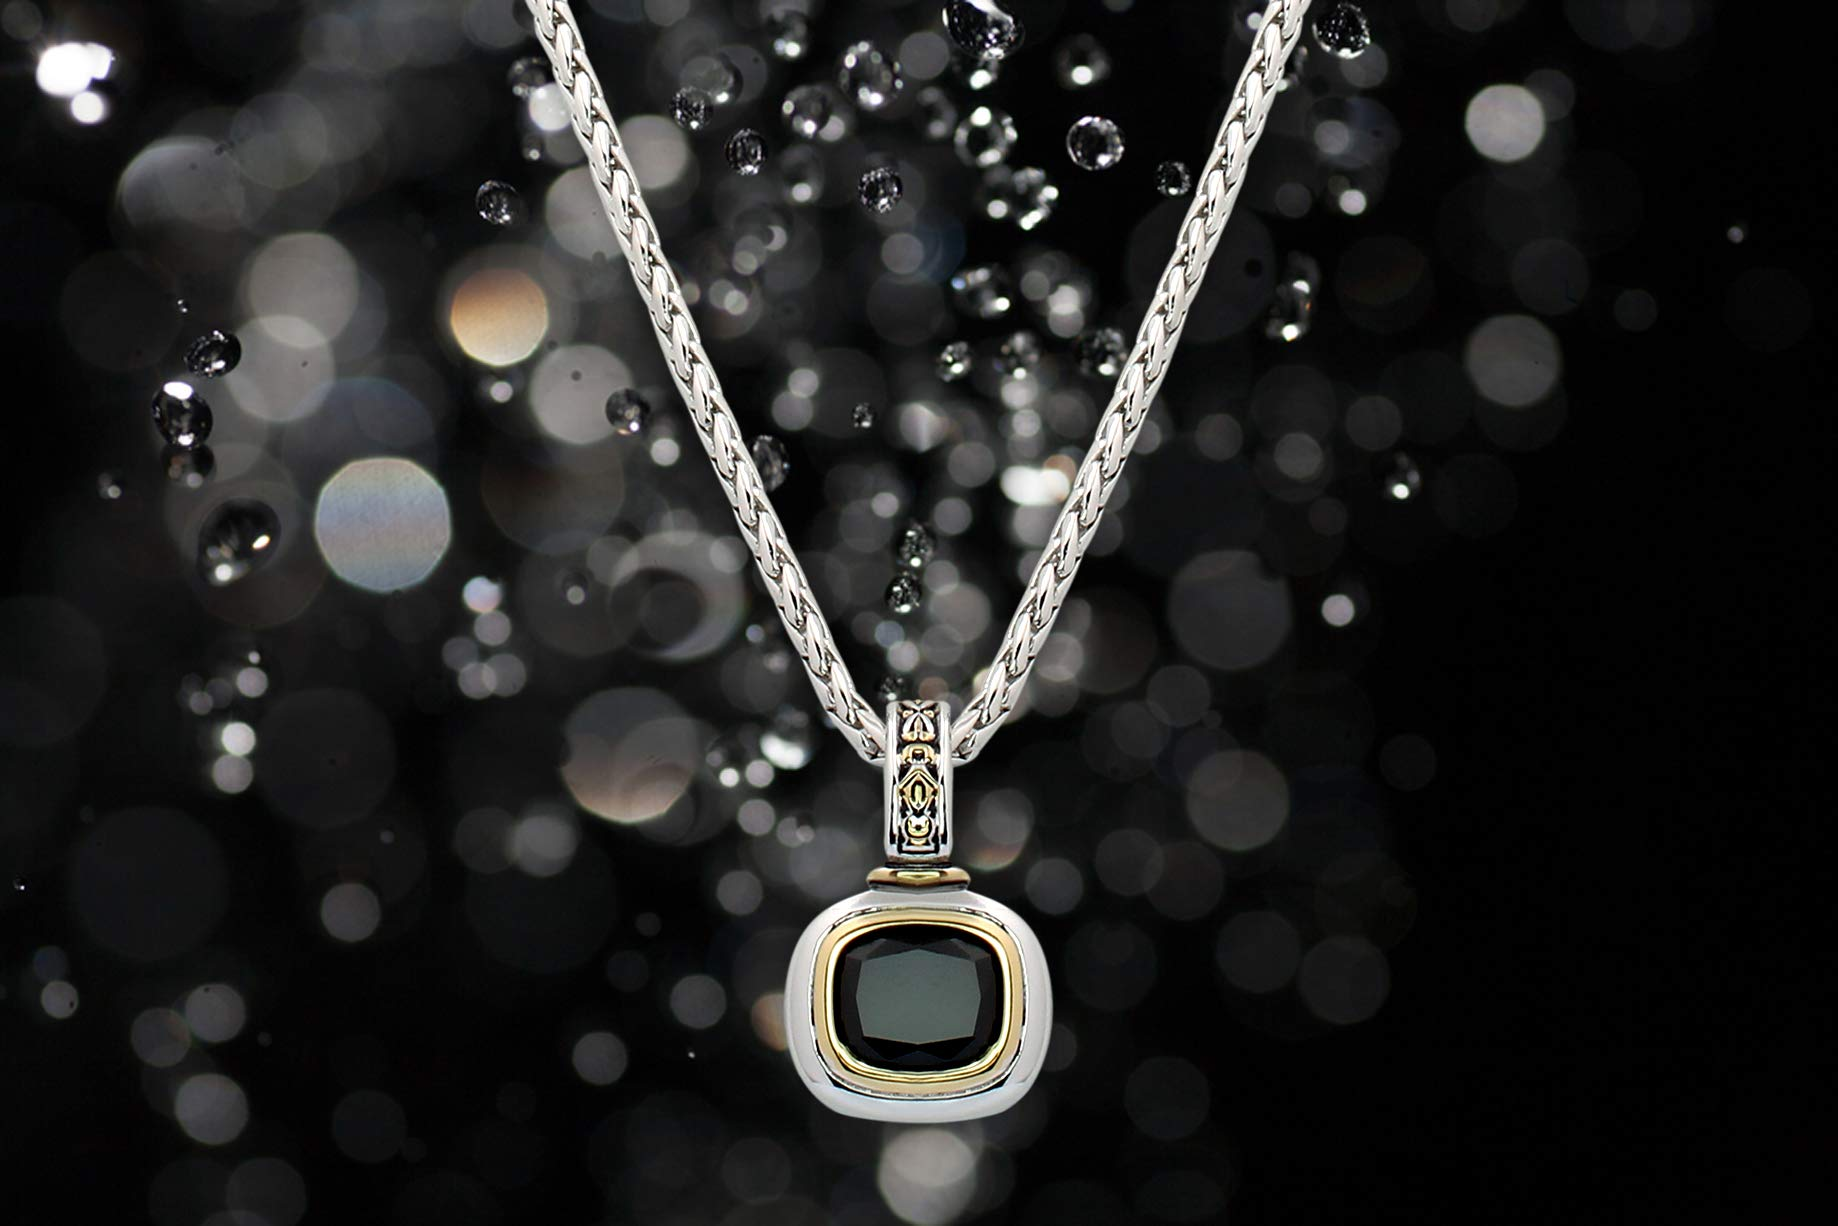 John Medeiros Black Cubic Zirconia Necklace 16'' ID Made in The USA by John Medeiros (Image #4)